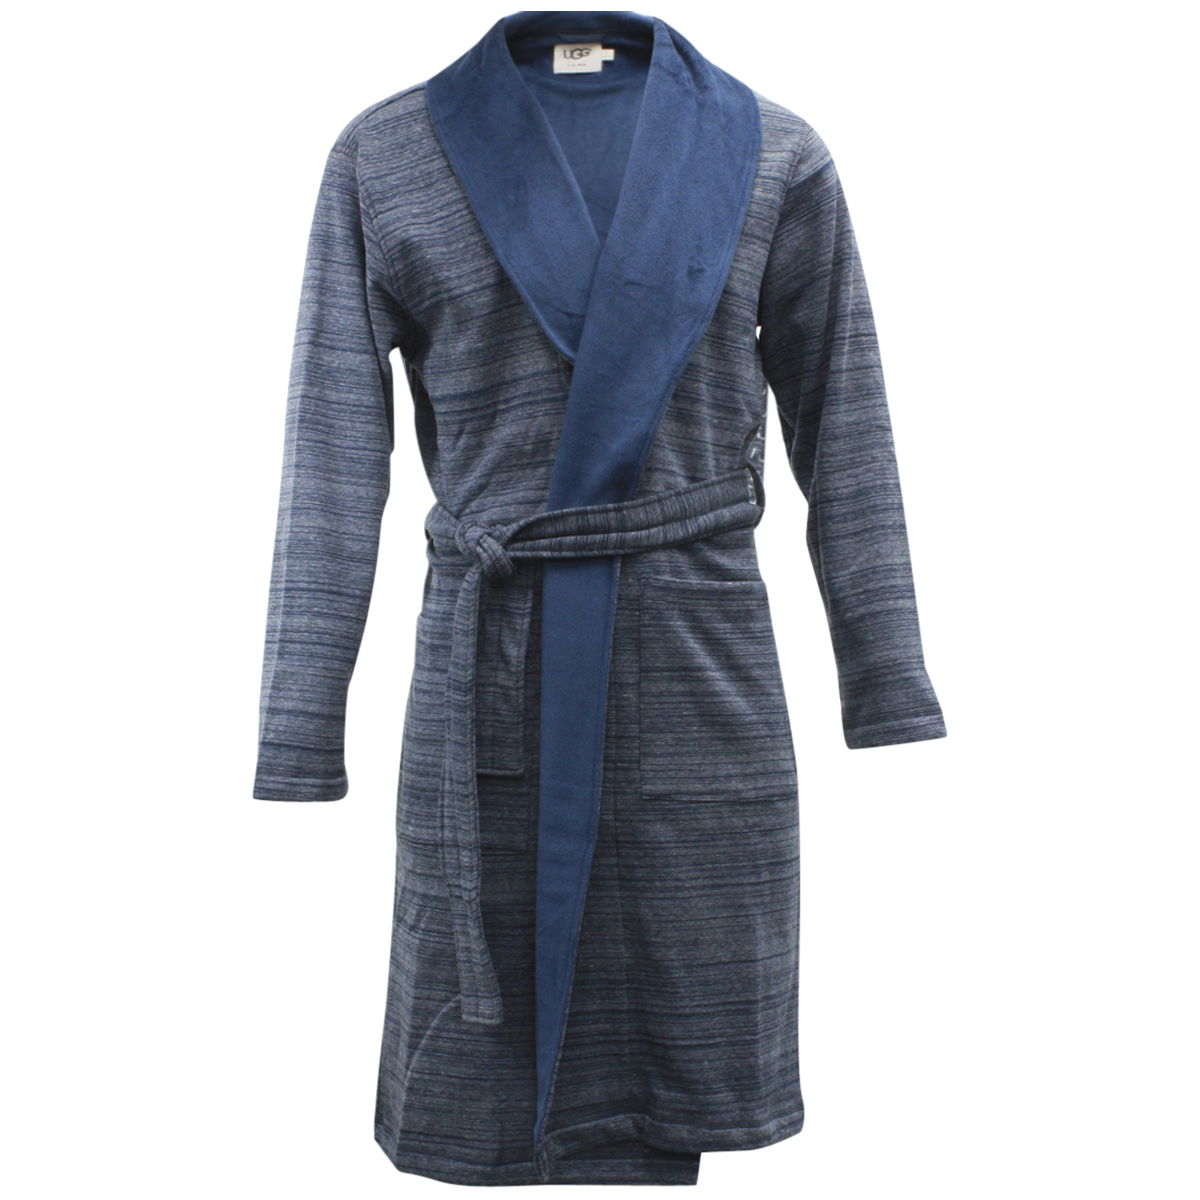 Image of Ugg Men's Robinson Relaxed Fit Fleece Lined Robe - Blue - Large